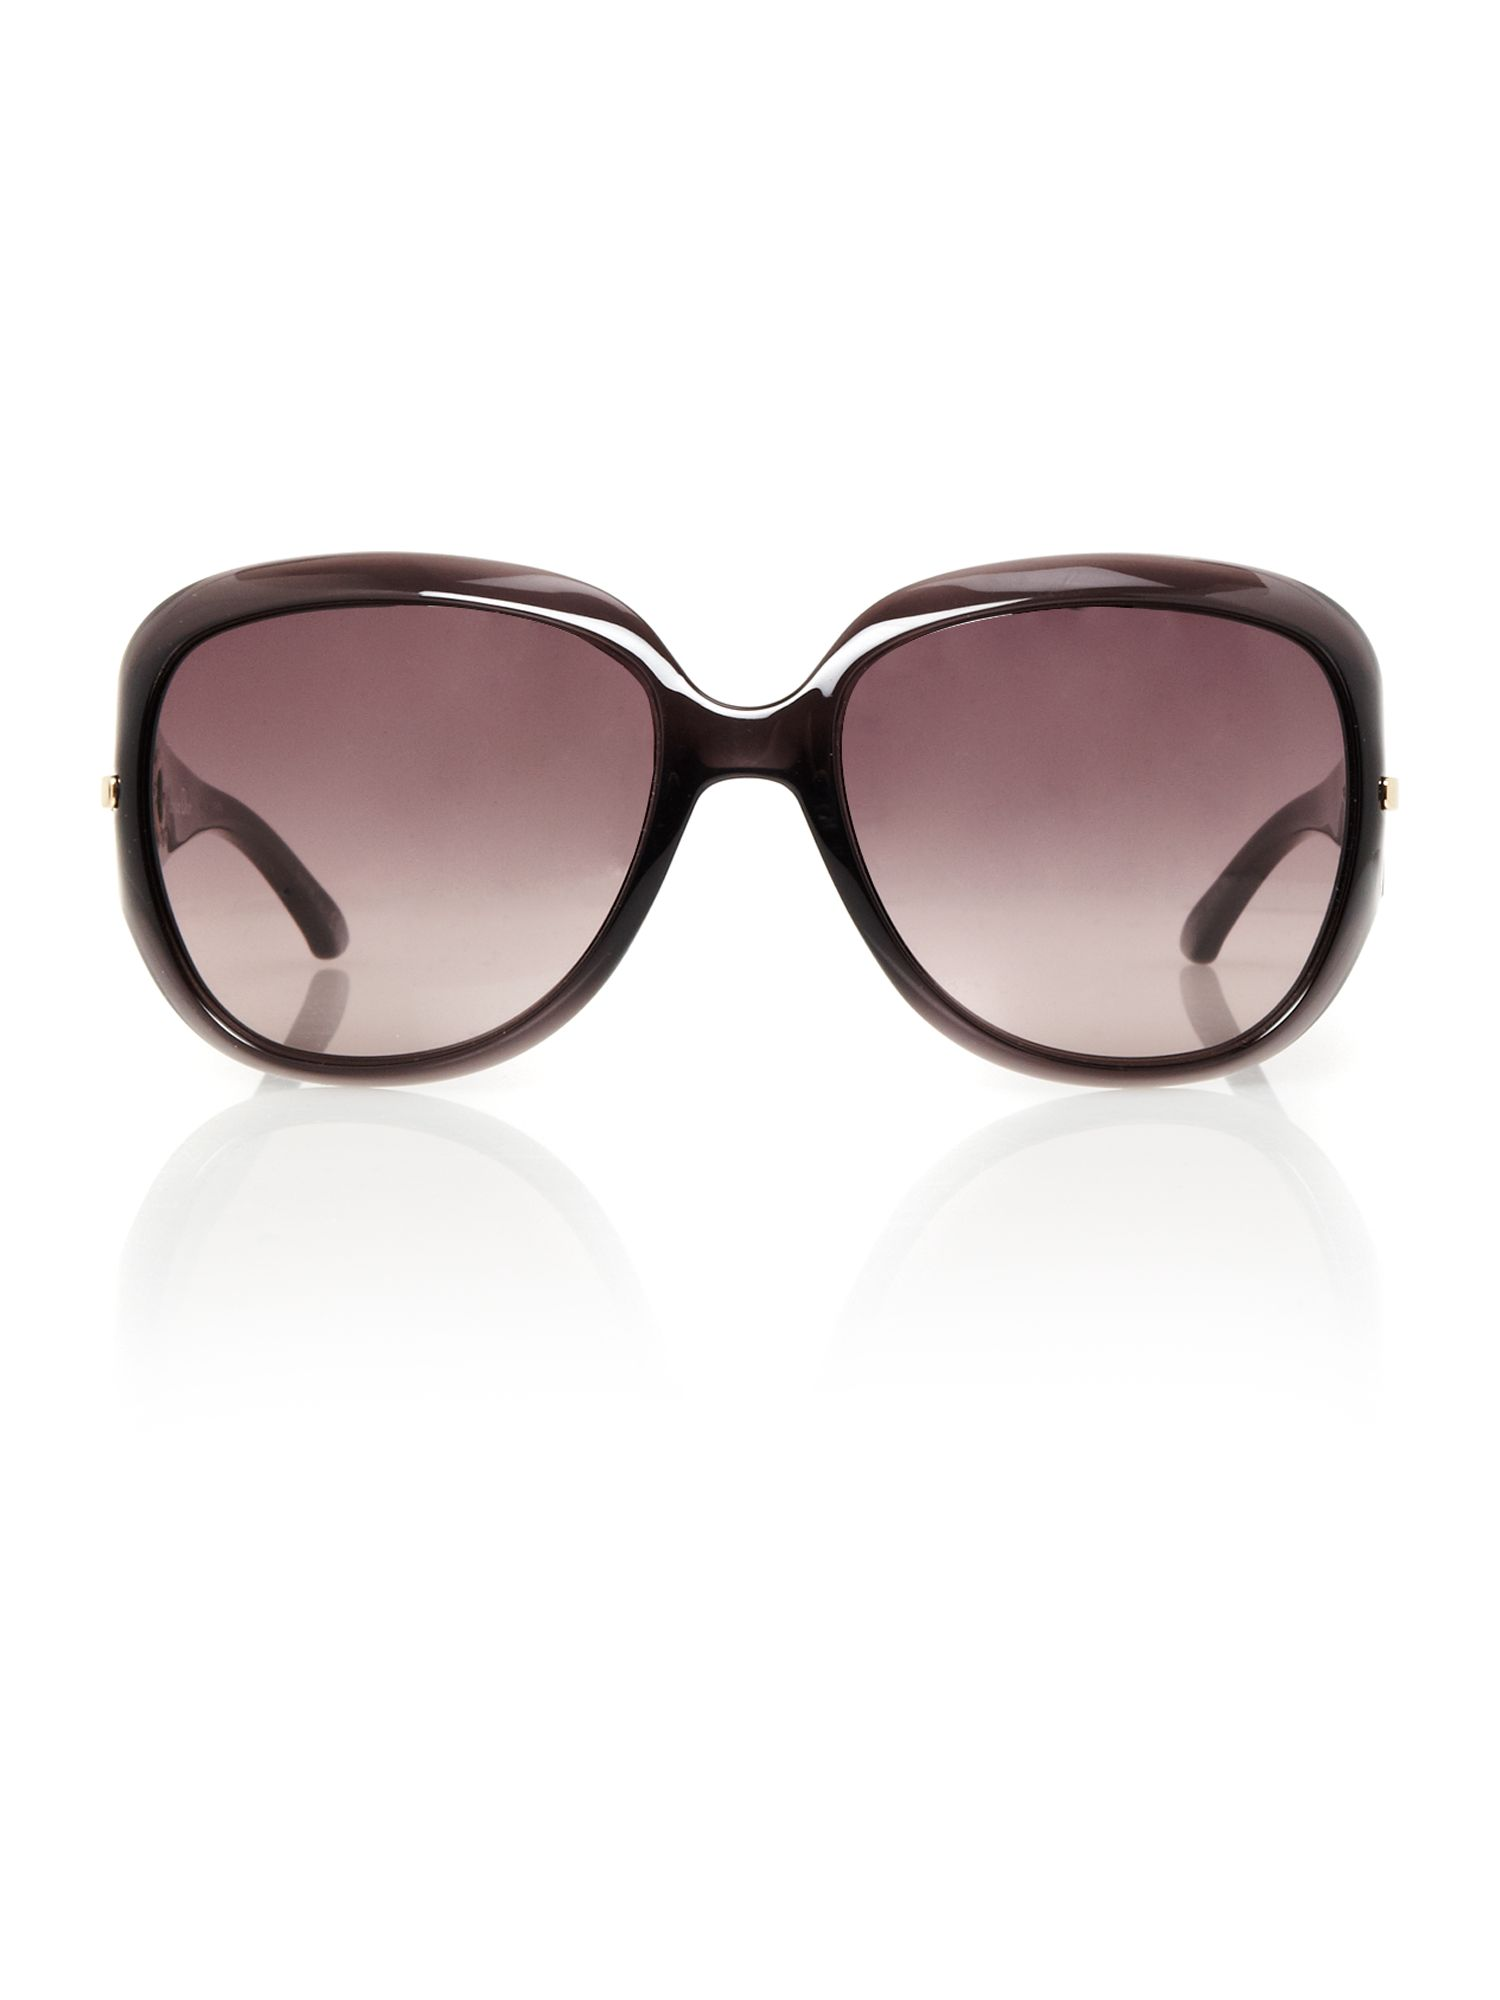 Ladies Precieuse Brown Sunglasses